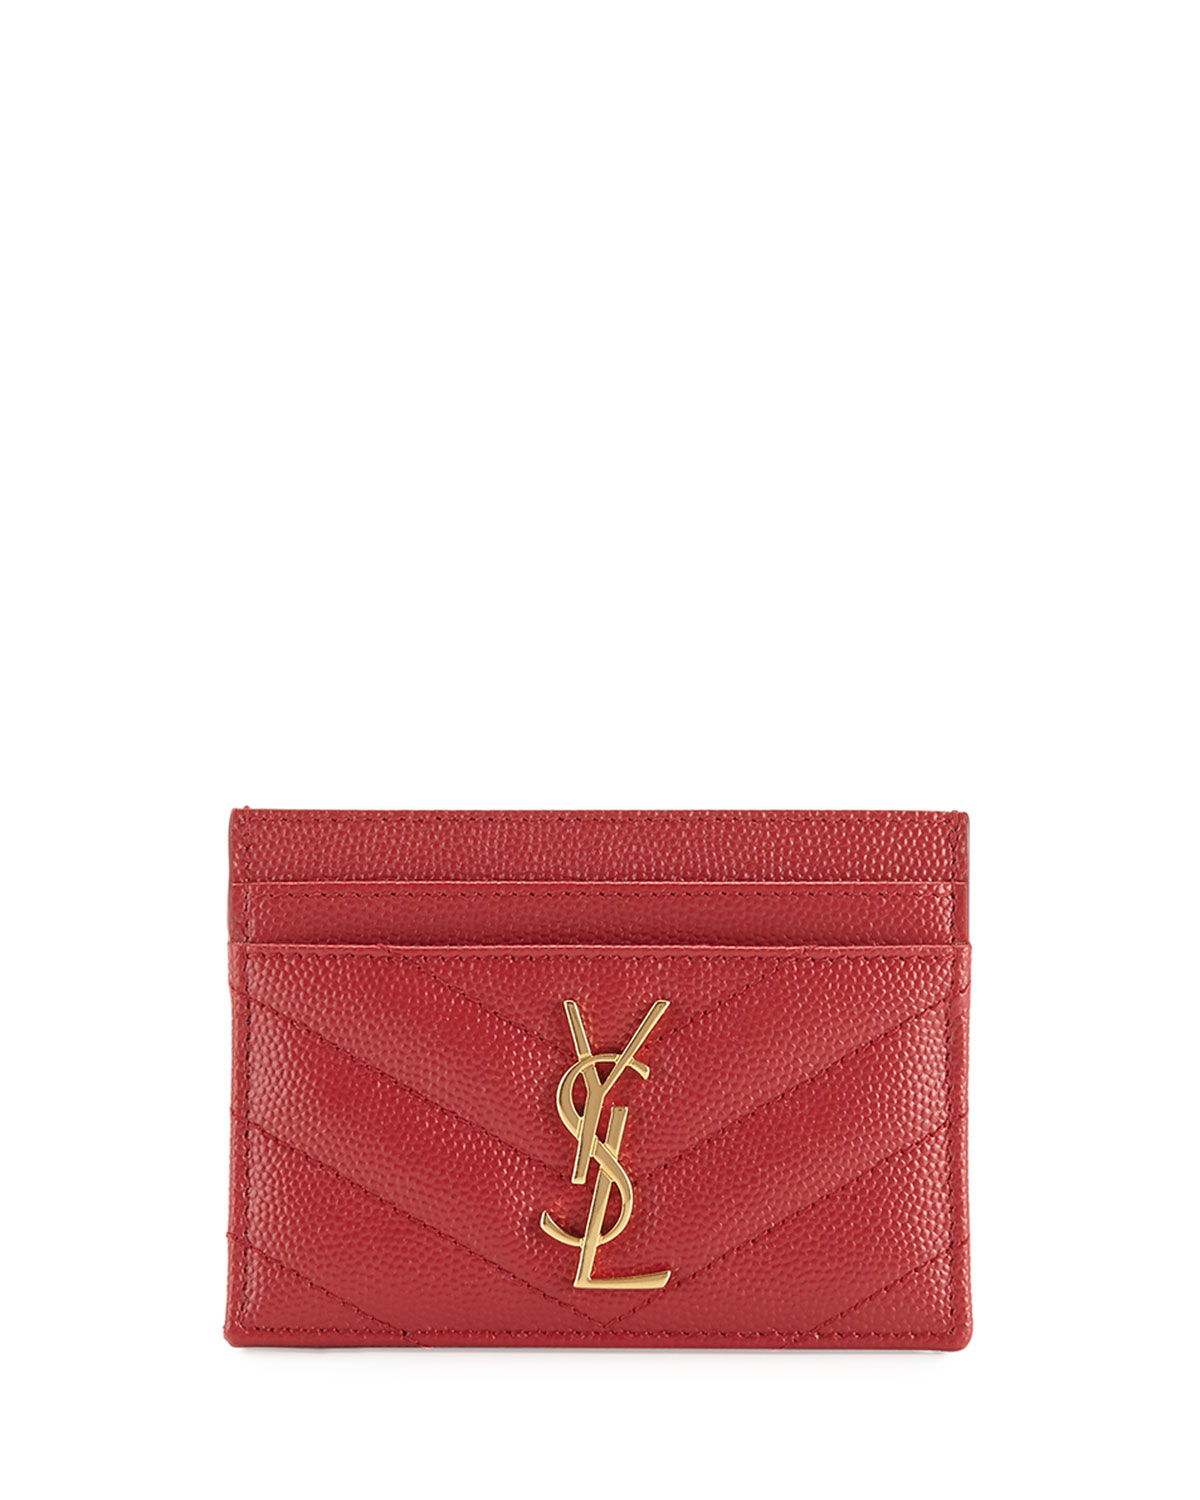 online store 3f56a ac133 Monogram YSL Matelasse Leather Card Case